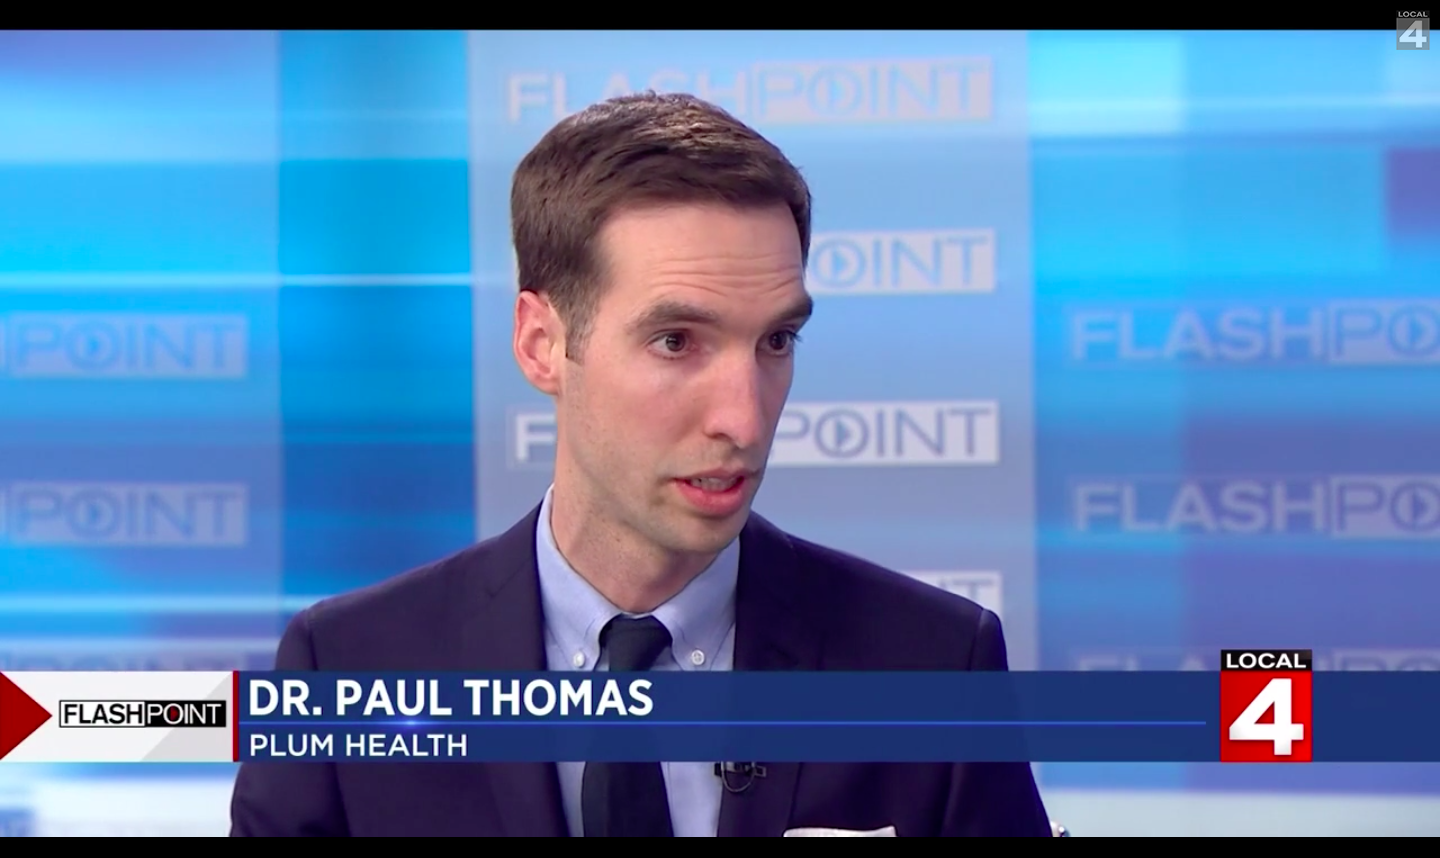 Paul Thomas MD of Plum Health DPC on Flashpoint with Devin Scillian and Dr. Frank McGeorge of WDIV Channel 4 in Detroit, Michigan, discussing Direct Primary Care.